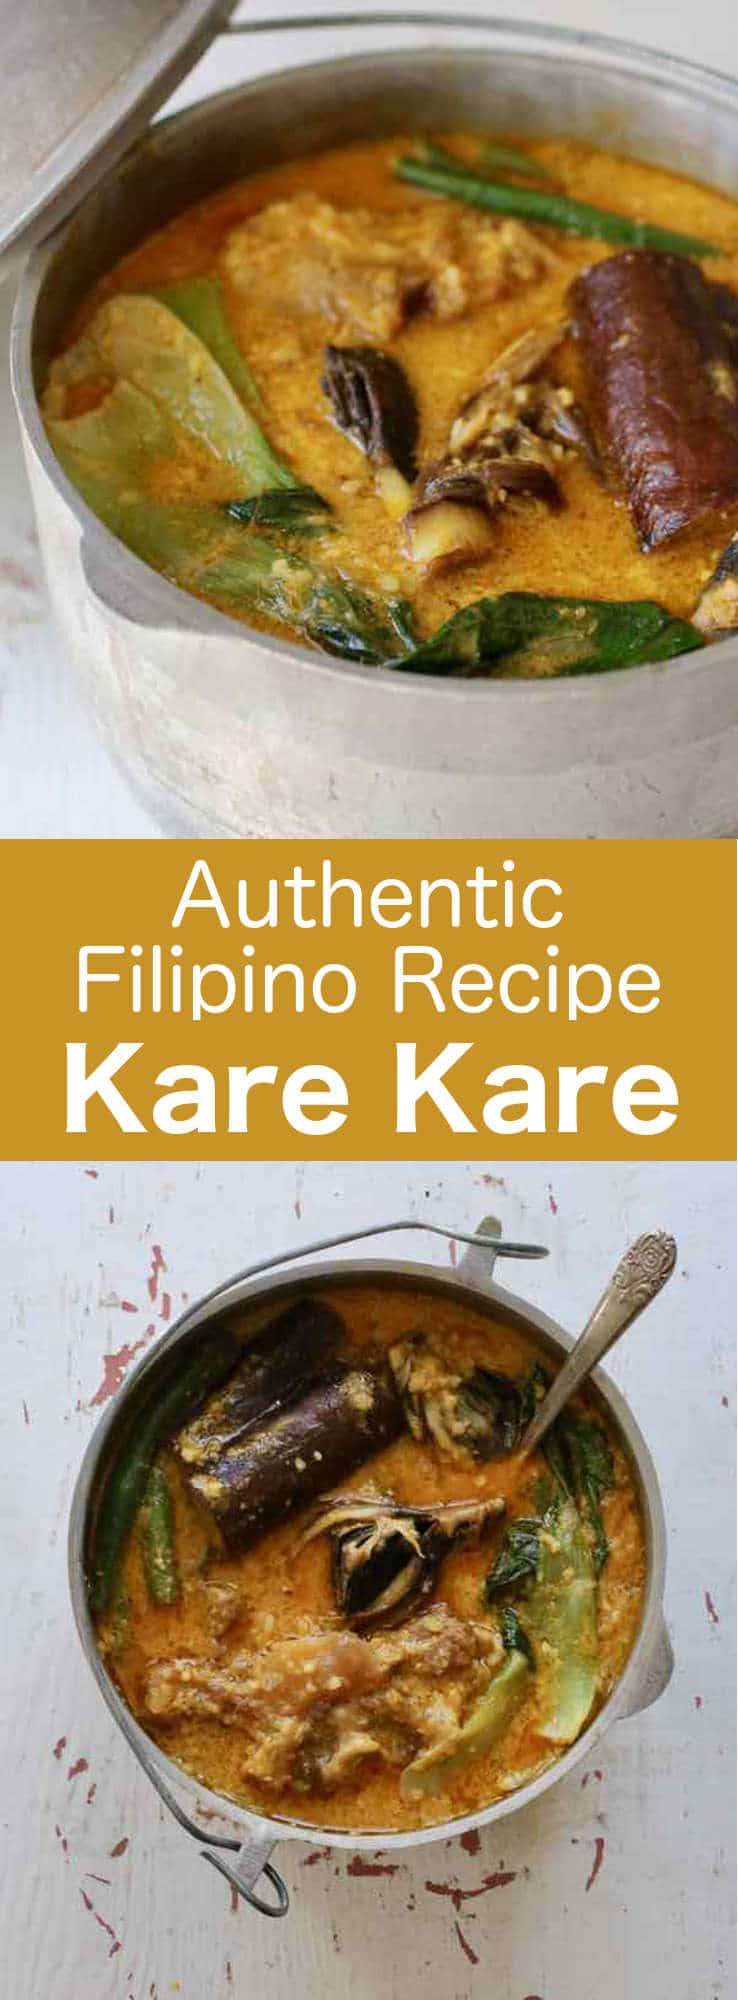 Kare kare is a delicious Filipino oxtail stew prepared with a thick peanut sauce, which is accompanied by a variety of sautéed vegetables. #Philippines #Filipino #196flavors